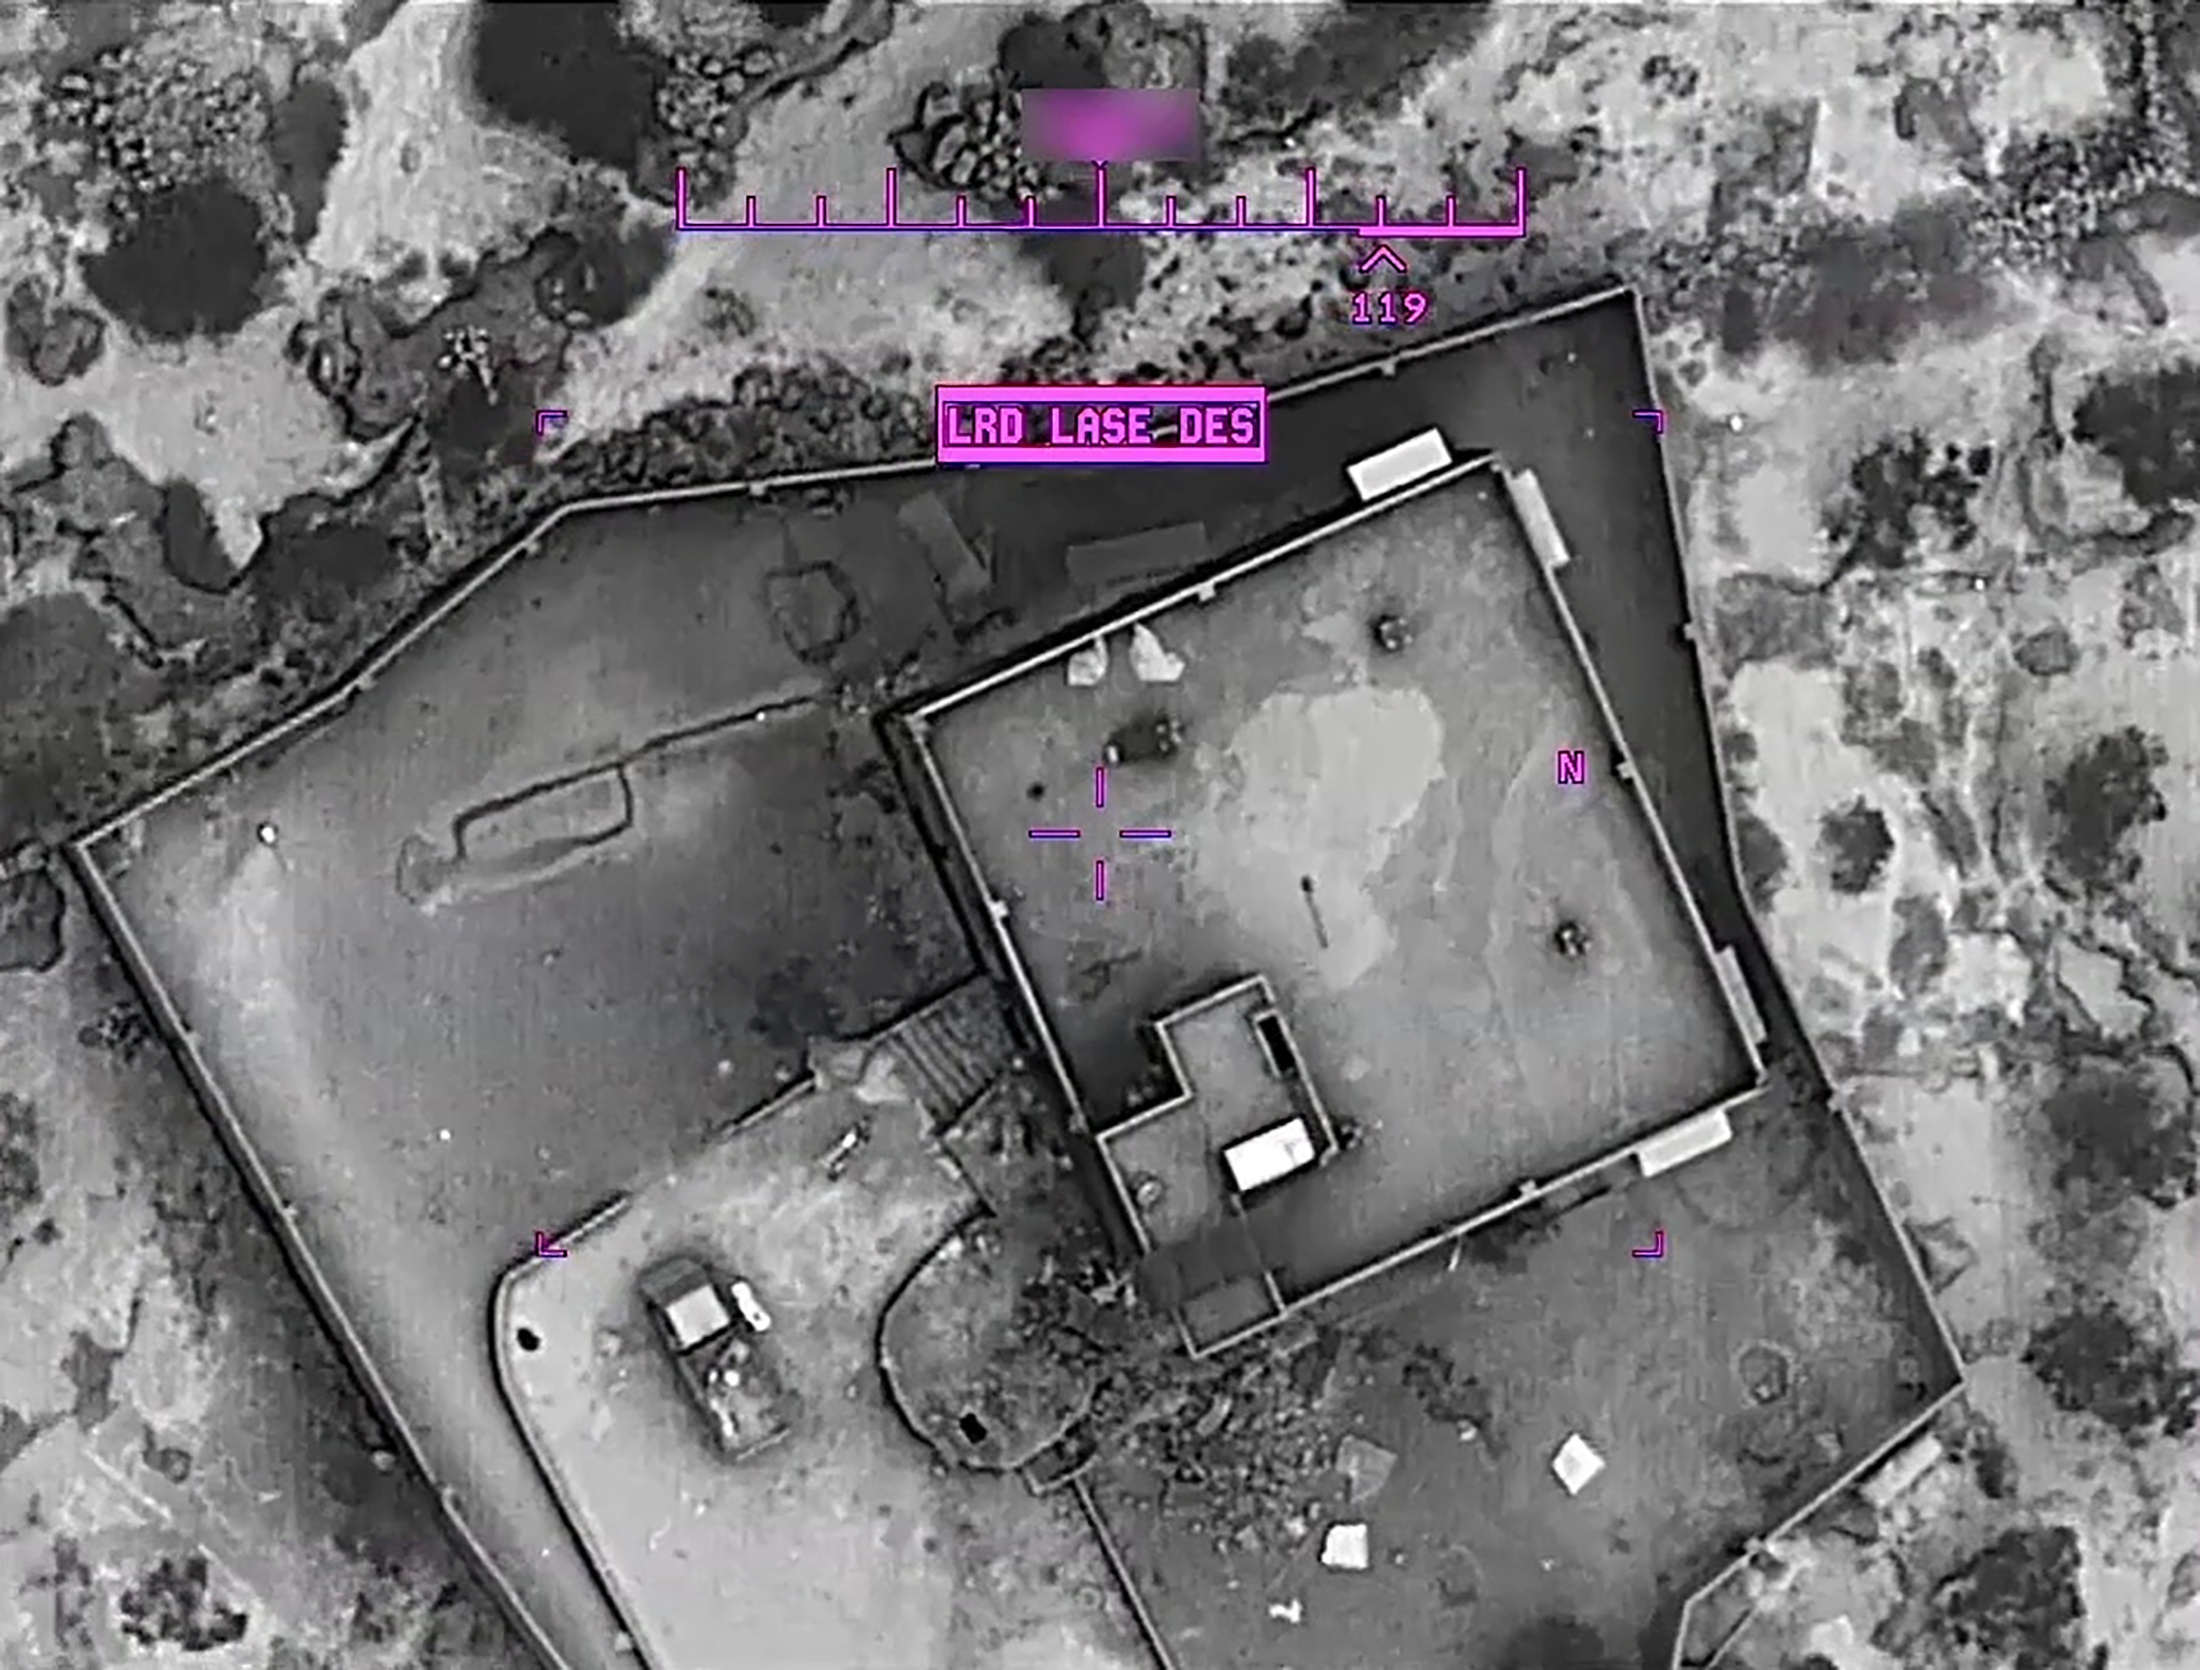 compound of ISIS leader al-Baghdadi